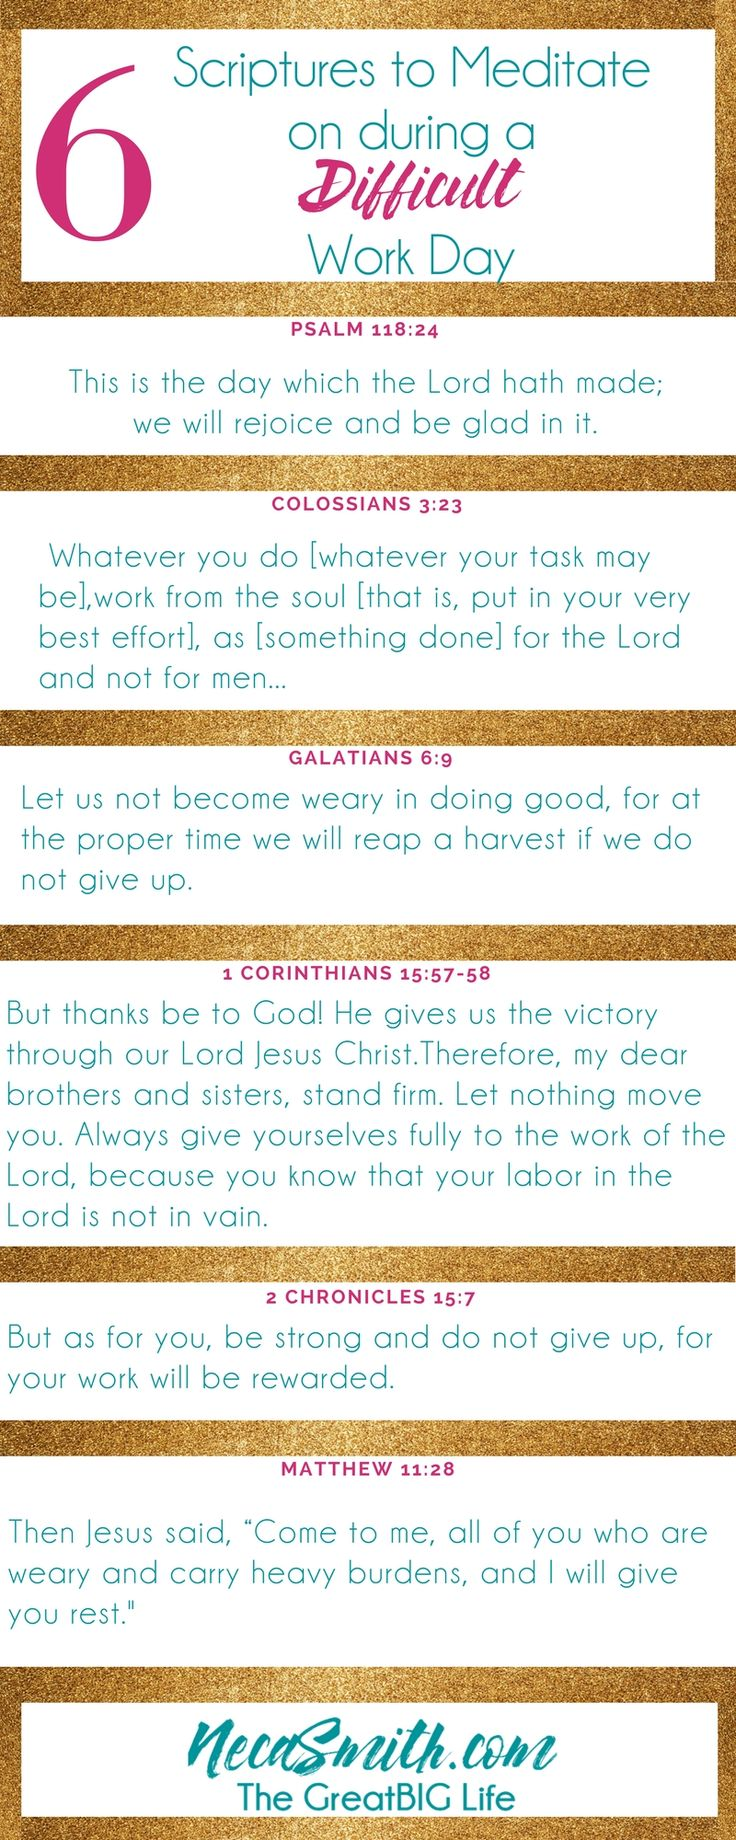 Get this free printable! The daily grind can become drudgery if you let it. Here are some scriptures that you can keep on your mind and heart at peace throughout the work day.